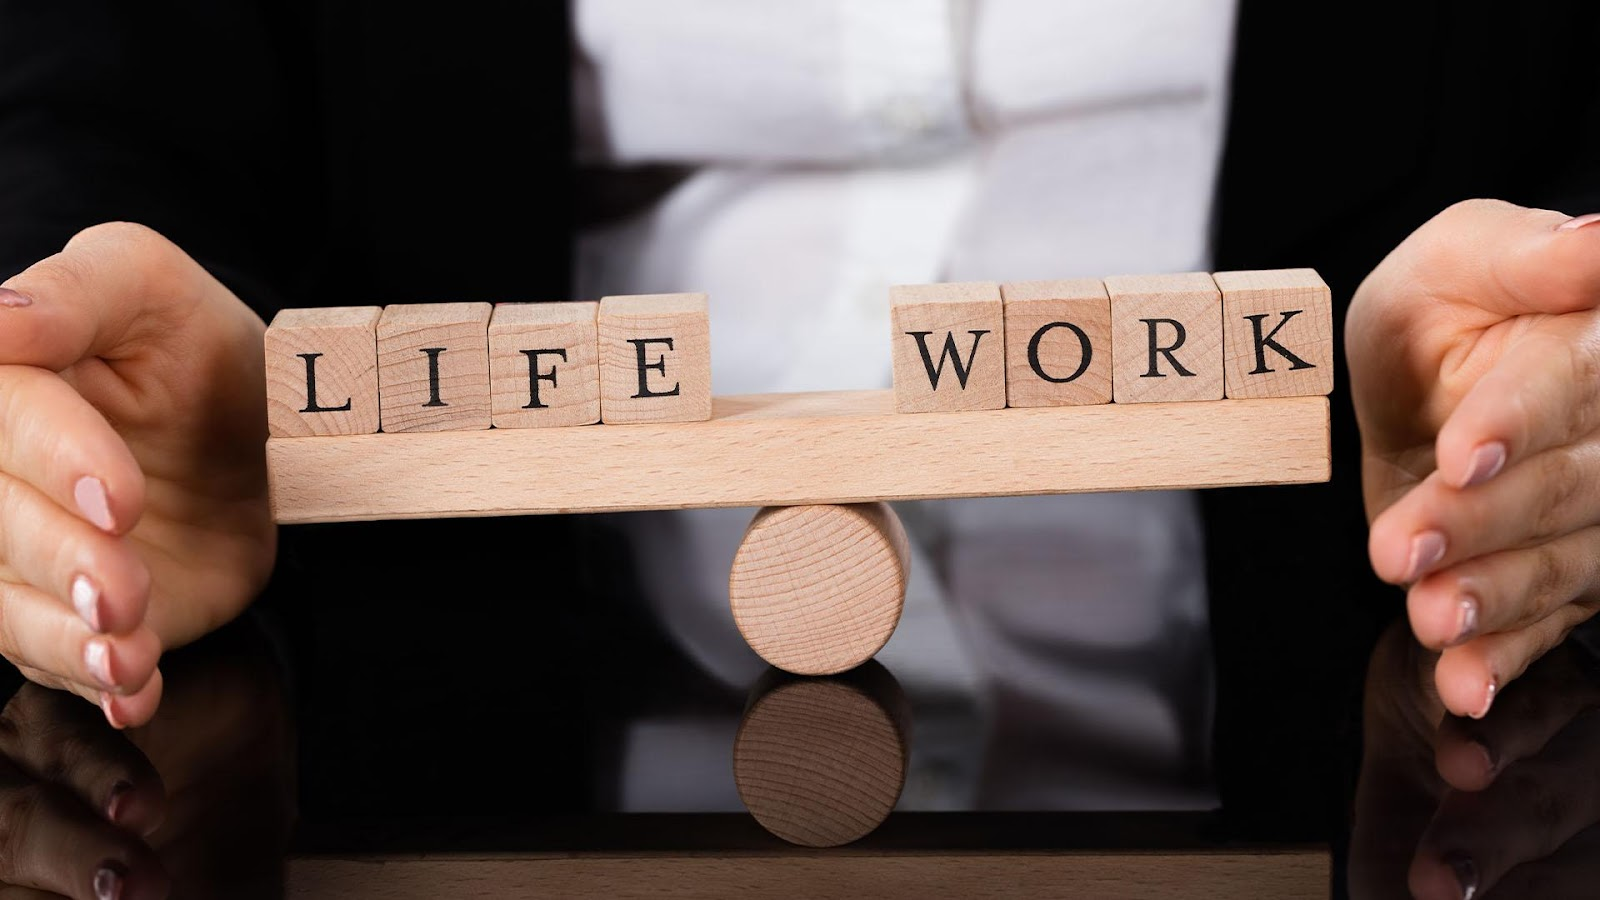 Working in CFT Group: work-life balance – CFT Group